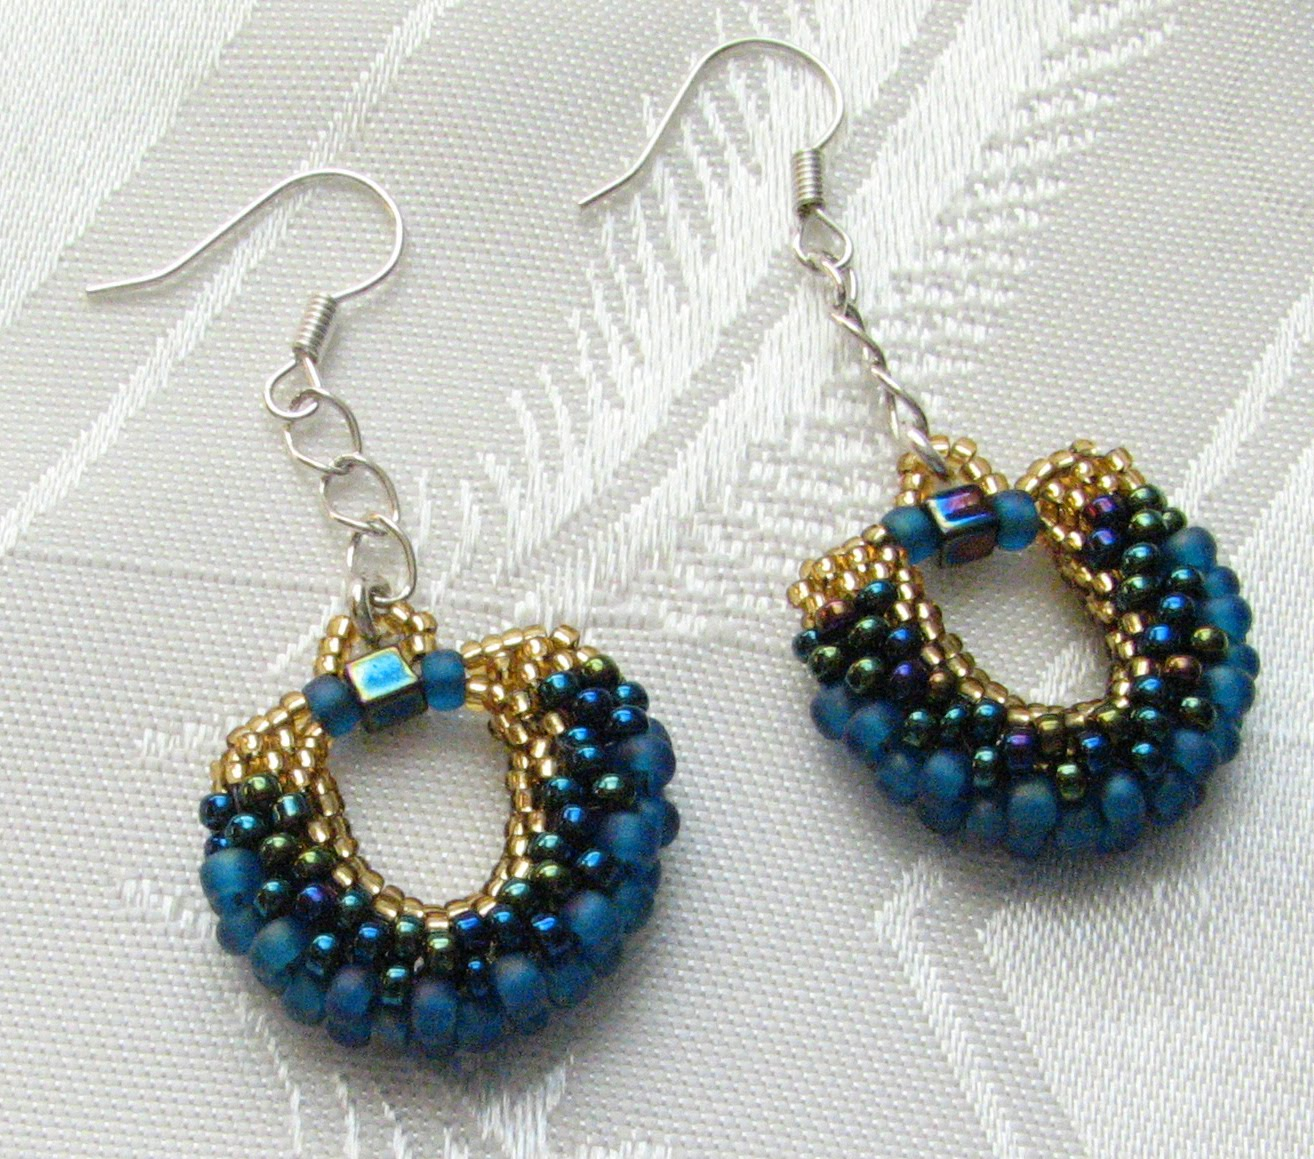 earrings | Beads by Roni